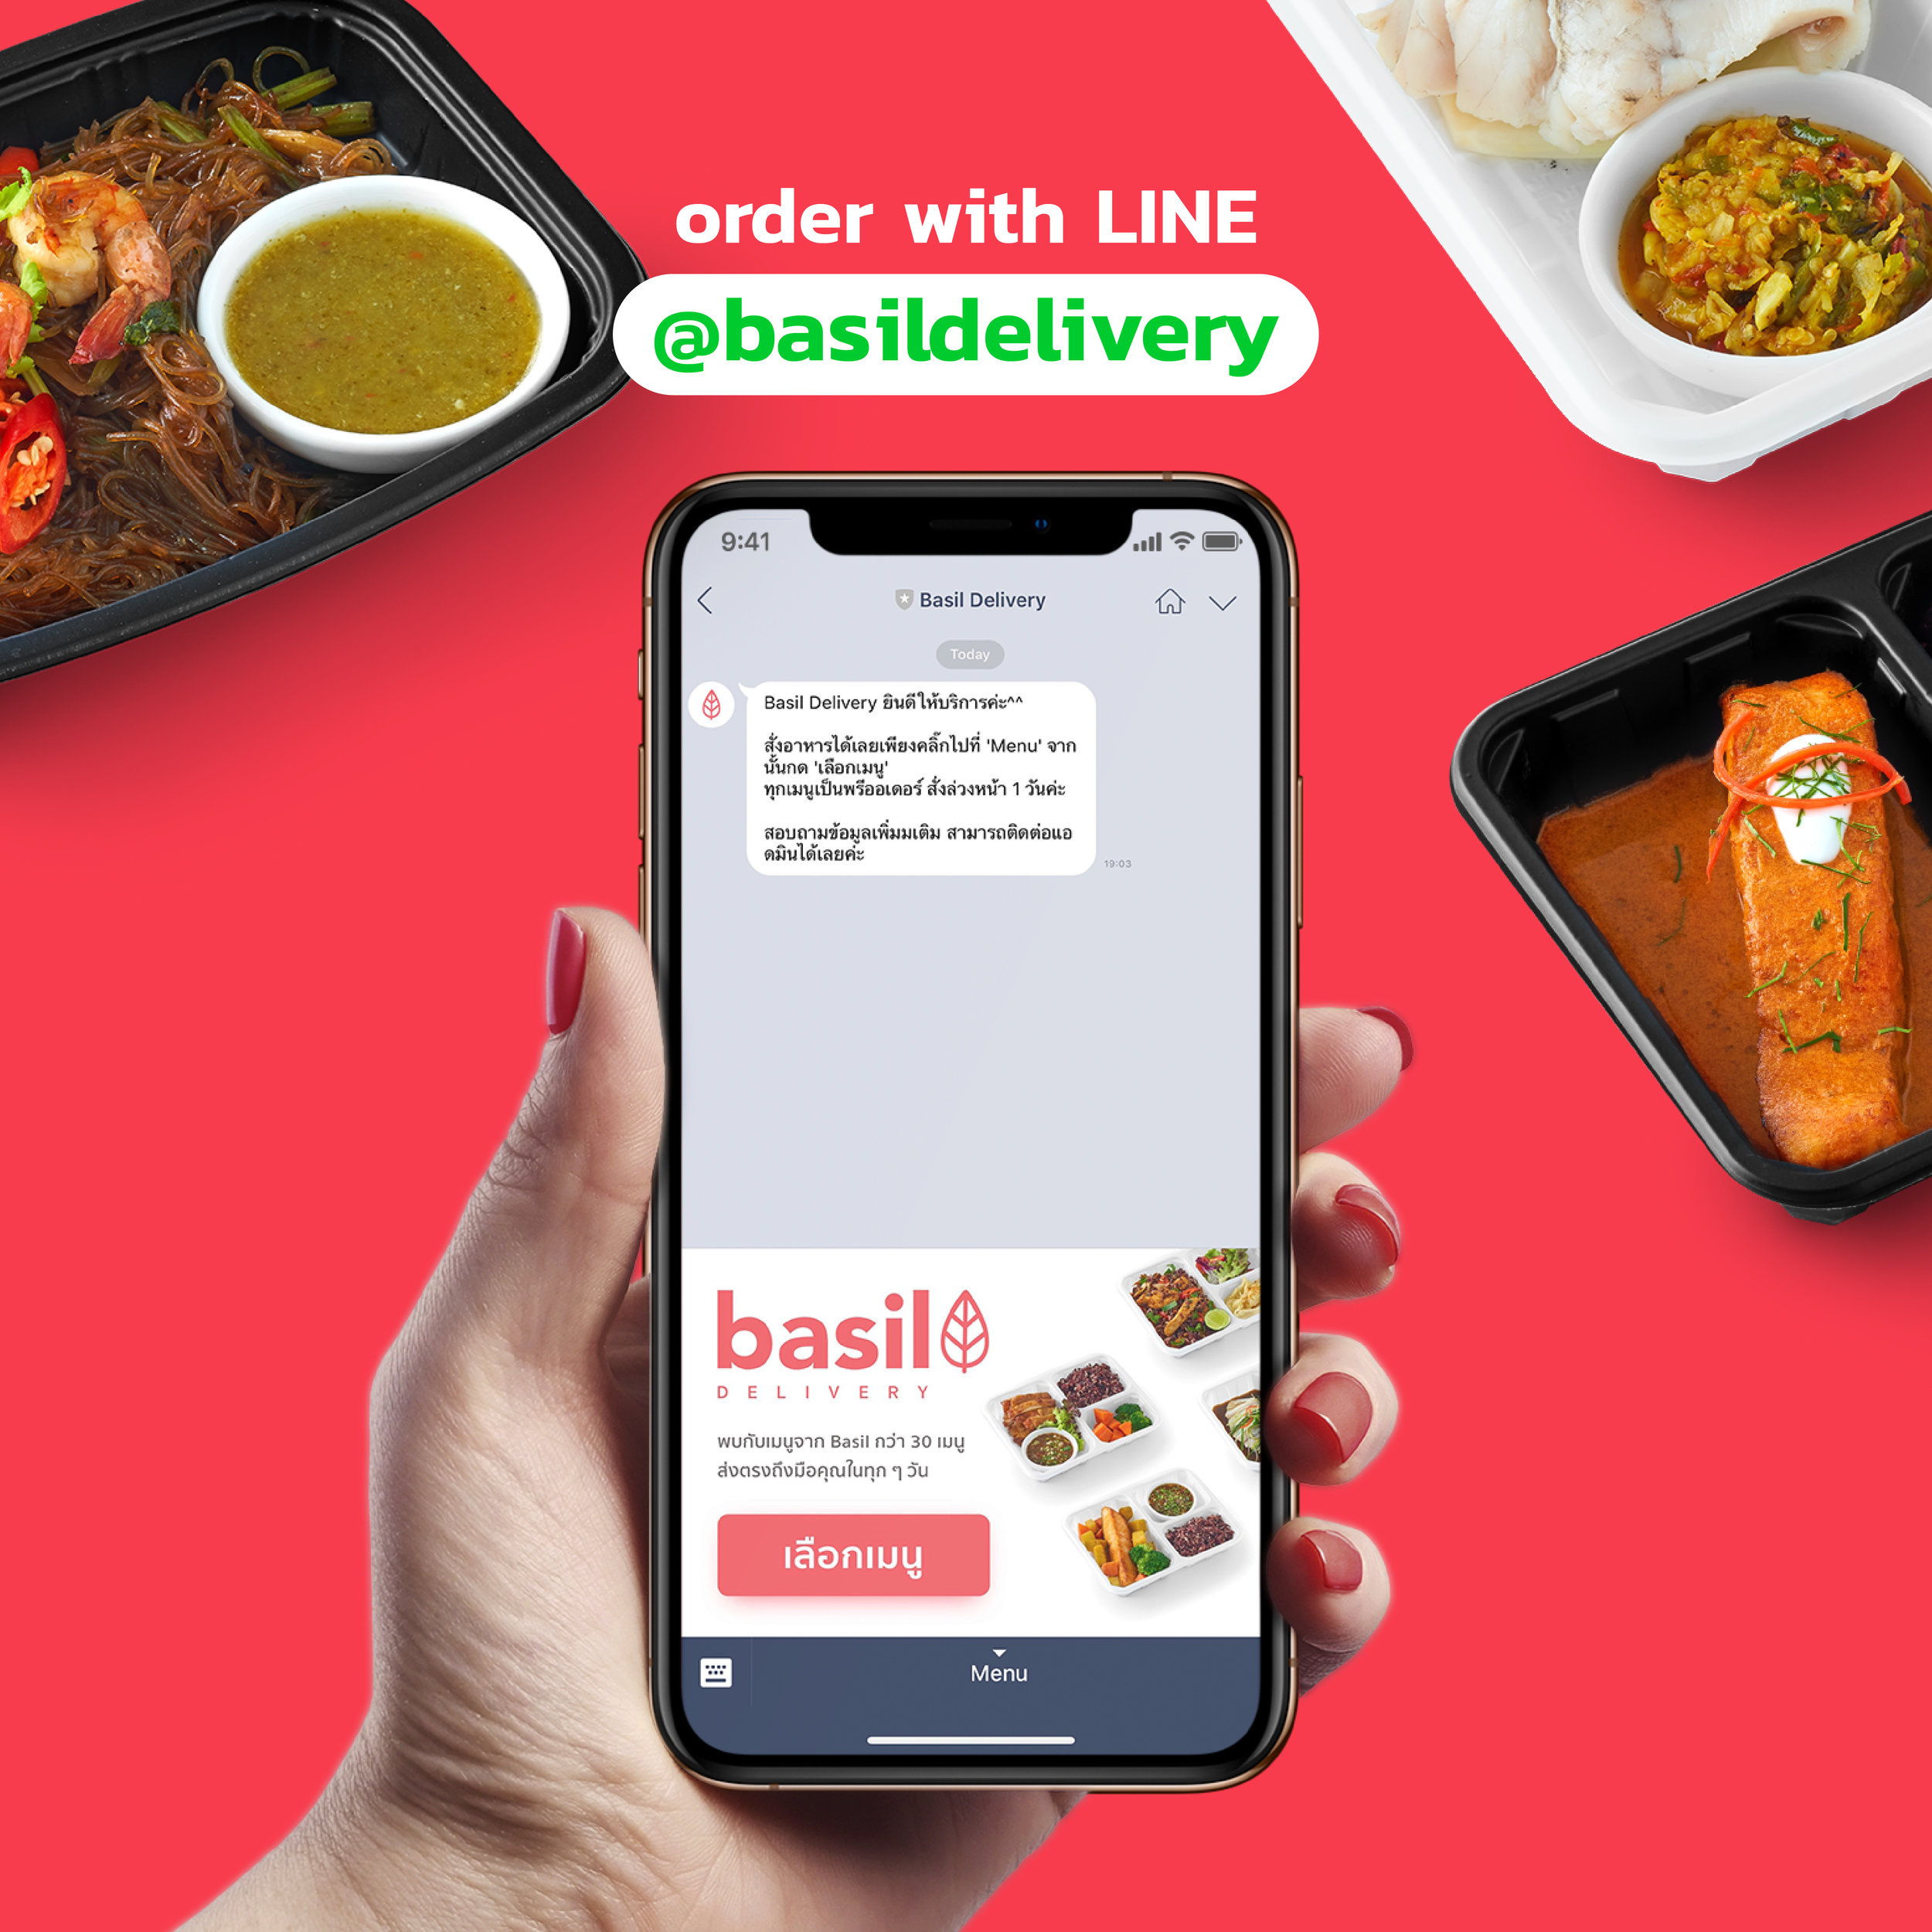 Simple ordering throughLINE - Enjoy super easy ordering through our line interface. Pay with cash, credit card, or prompt pay